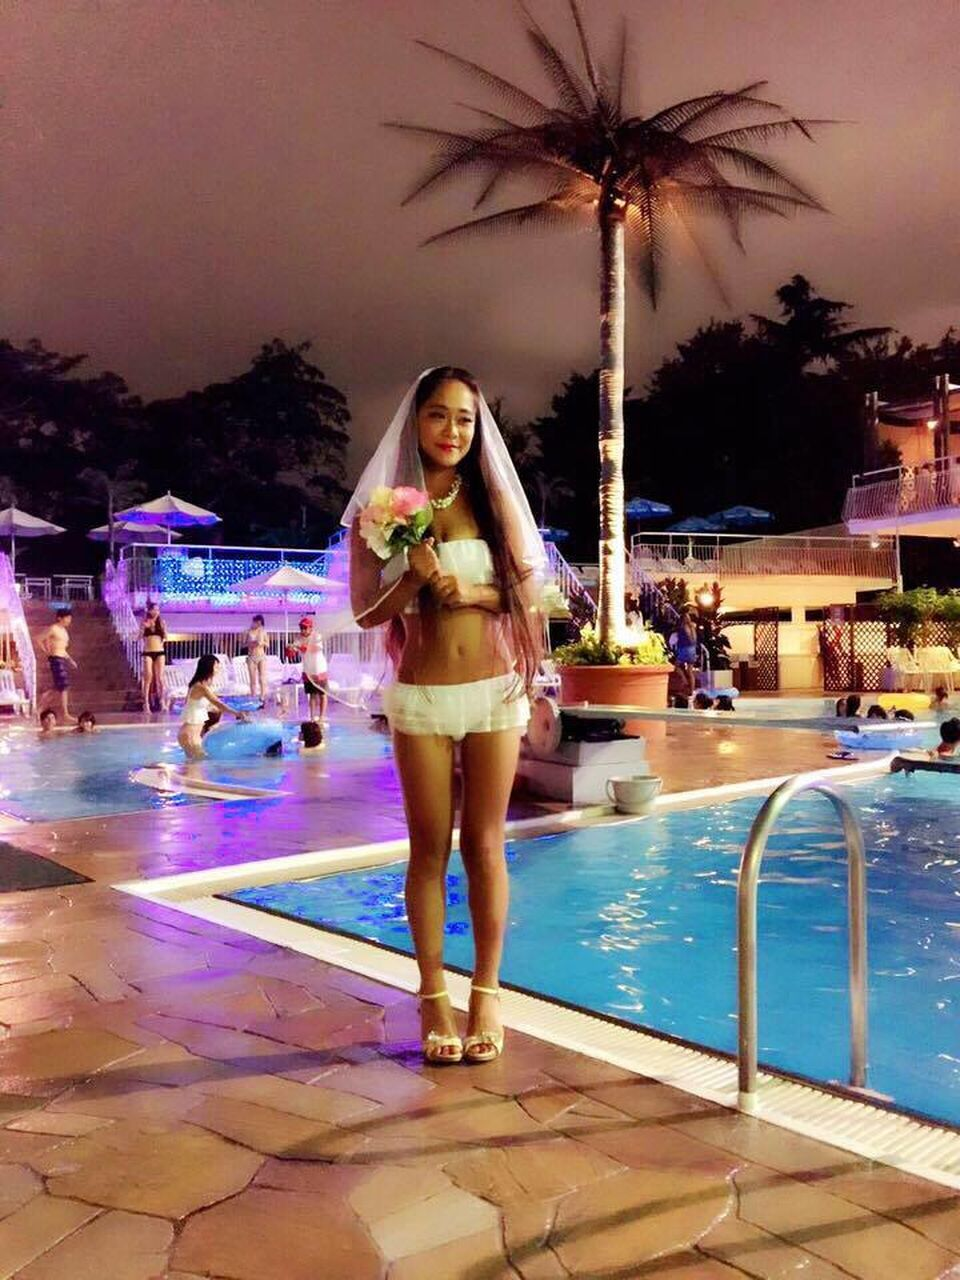 swimming pool, young adult, lifestyles, real people, young women, illuminated, leisure activity, front view, night, portrait, full length, looking at camera, water, tree, outdoors, one person, beautiful woman, palm tree, architecture, adult, people